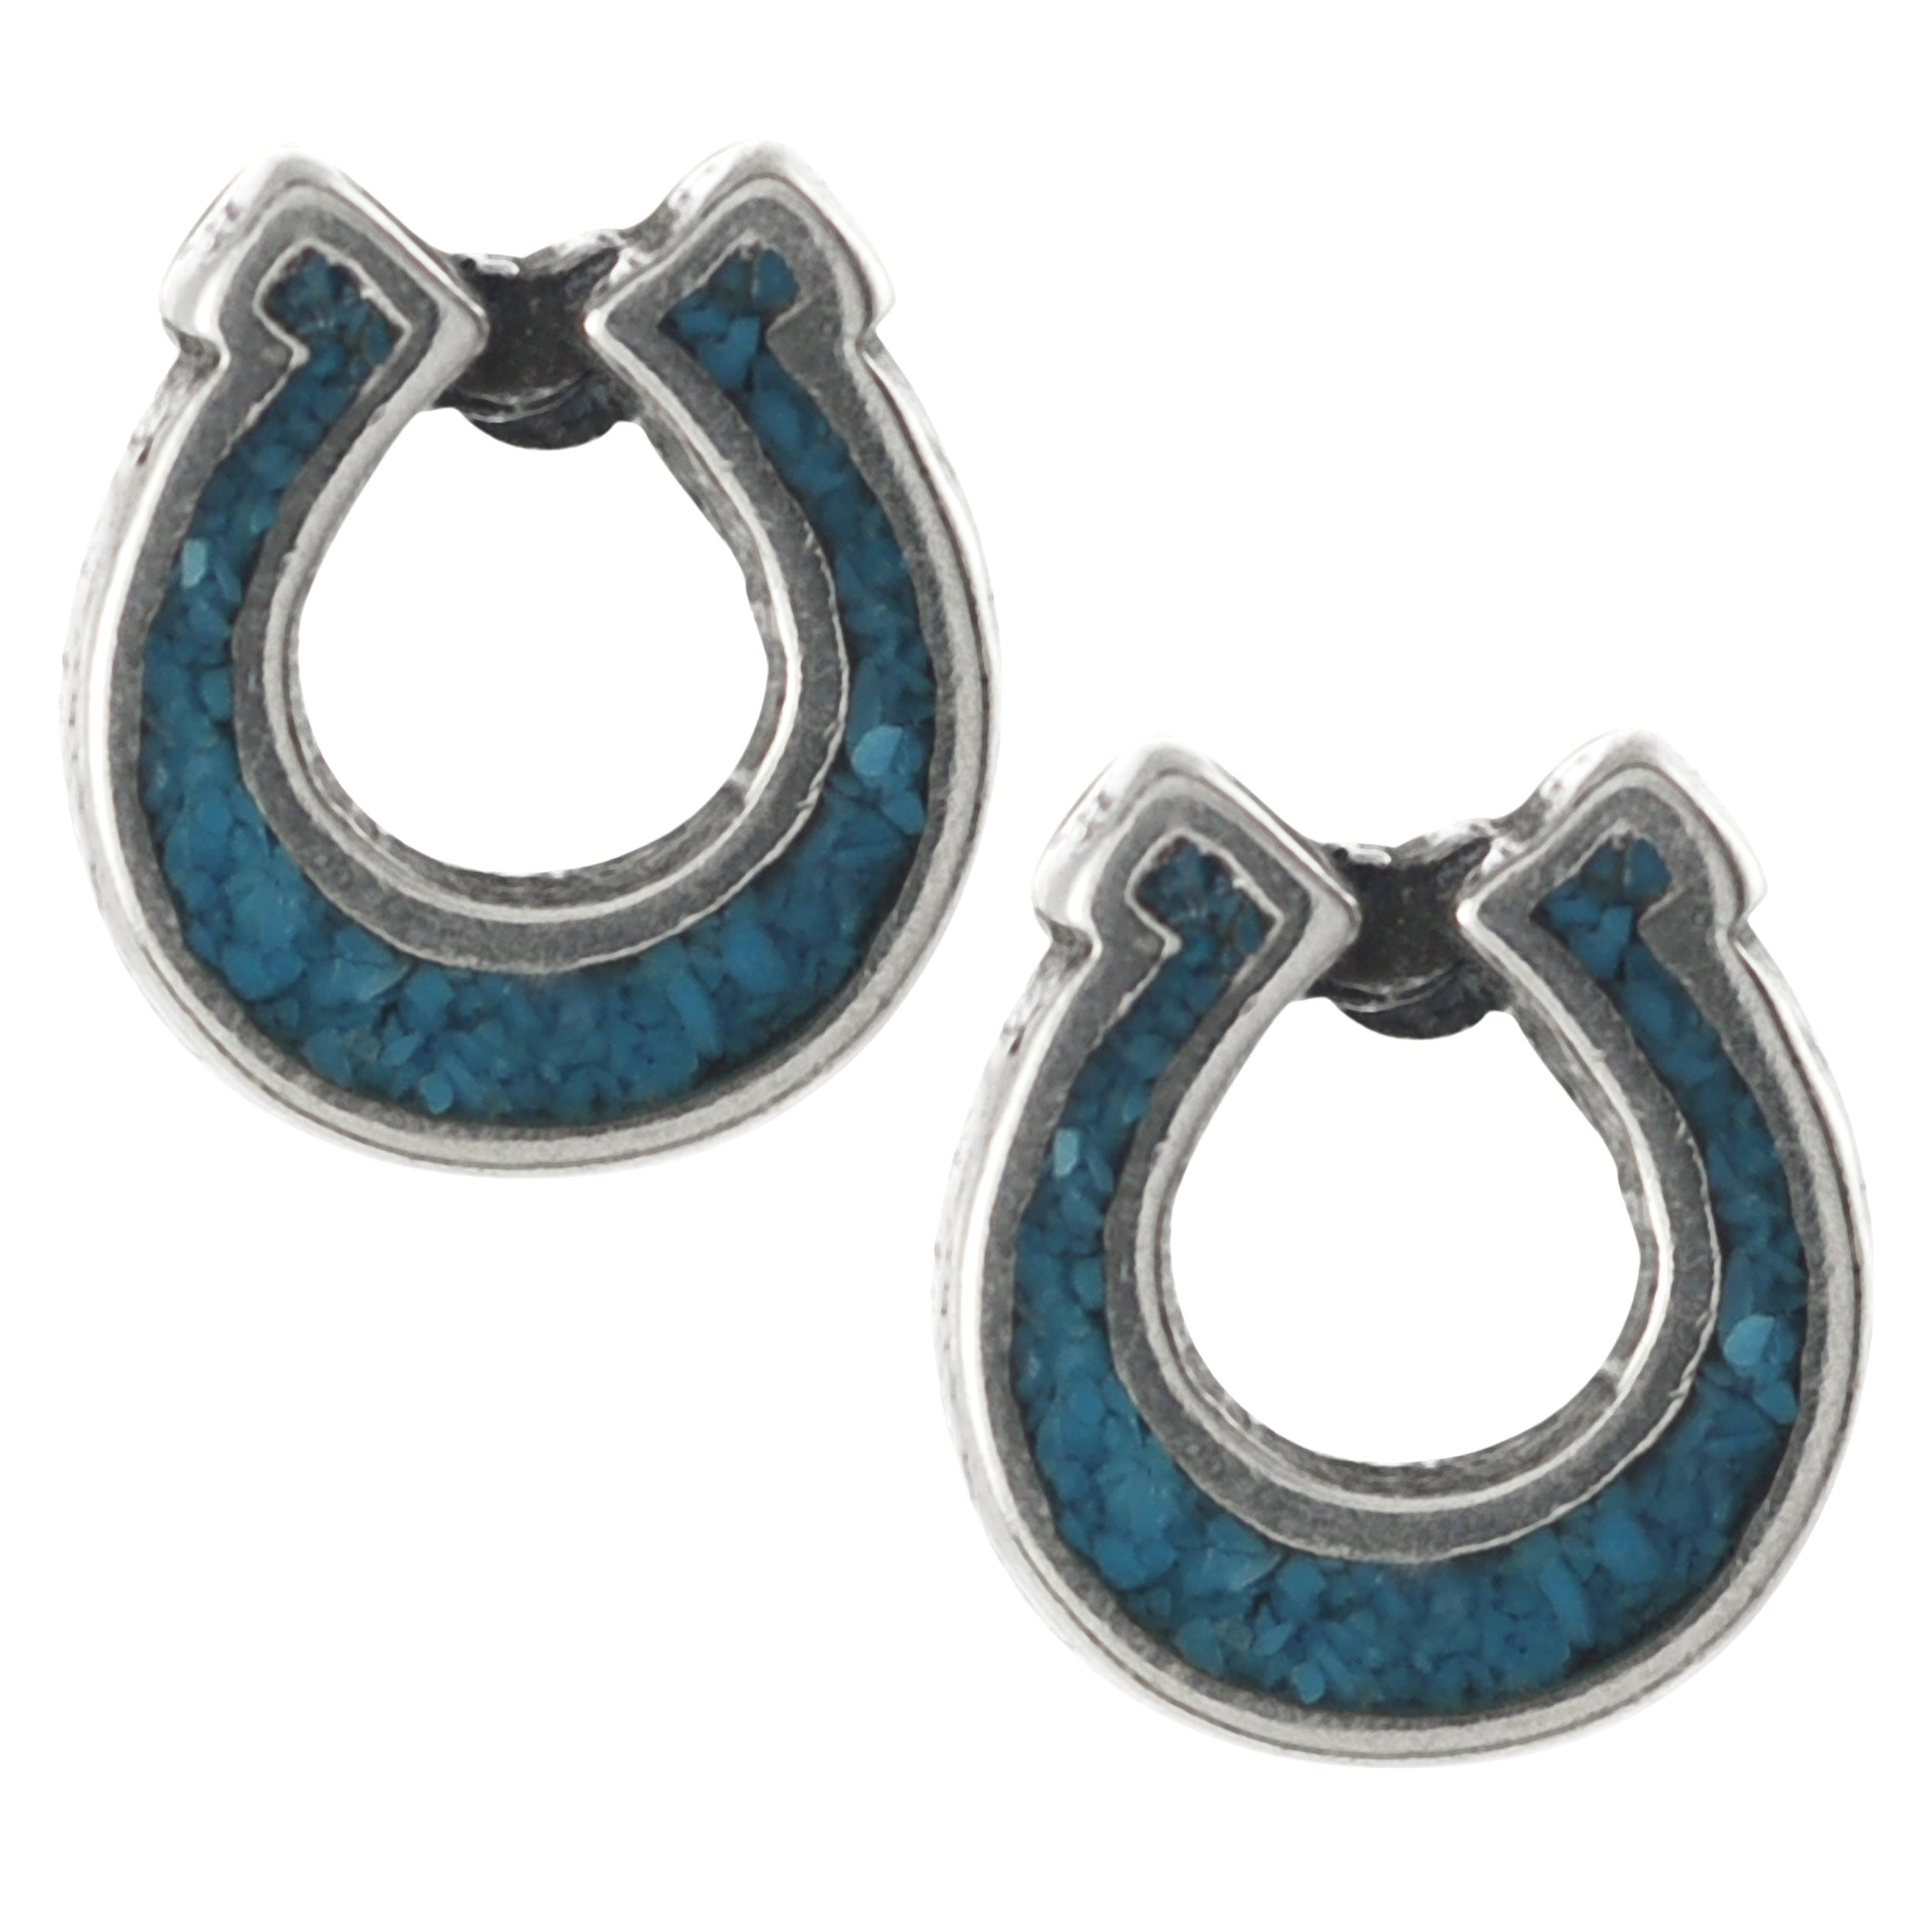 Journee Collection Sterling Silver Genuine Turquoise Horseshoe Stud Earrings